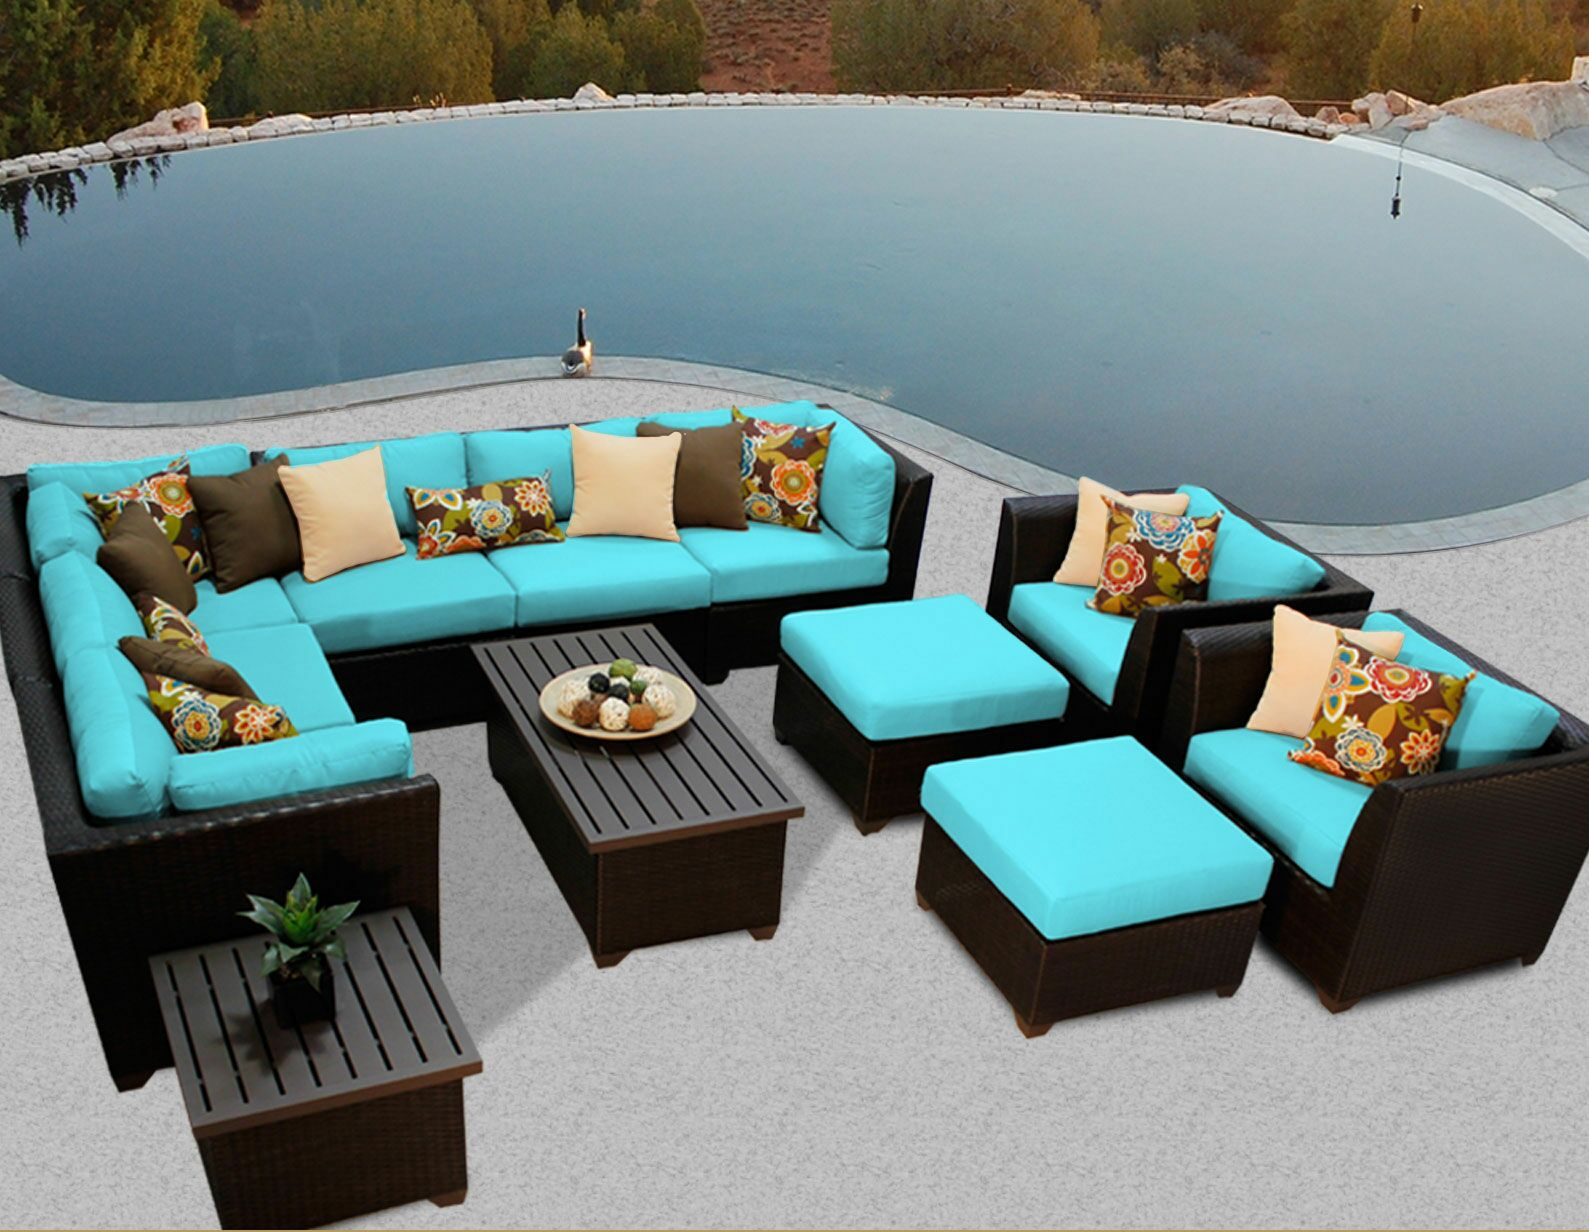 Barbados 12 Piece Rattan Sectional Set with Cushions Color: Aruba